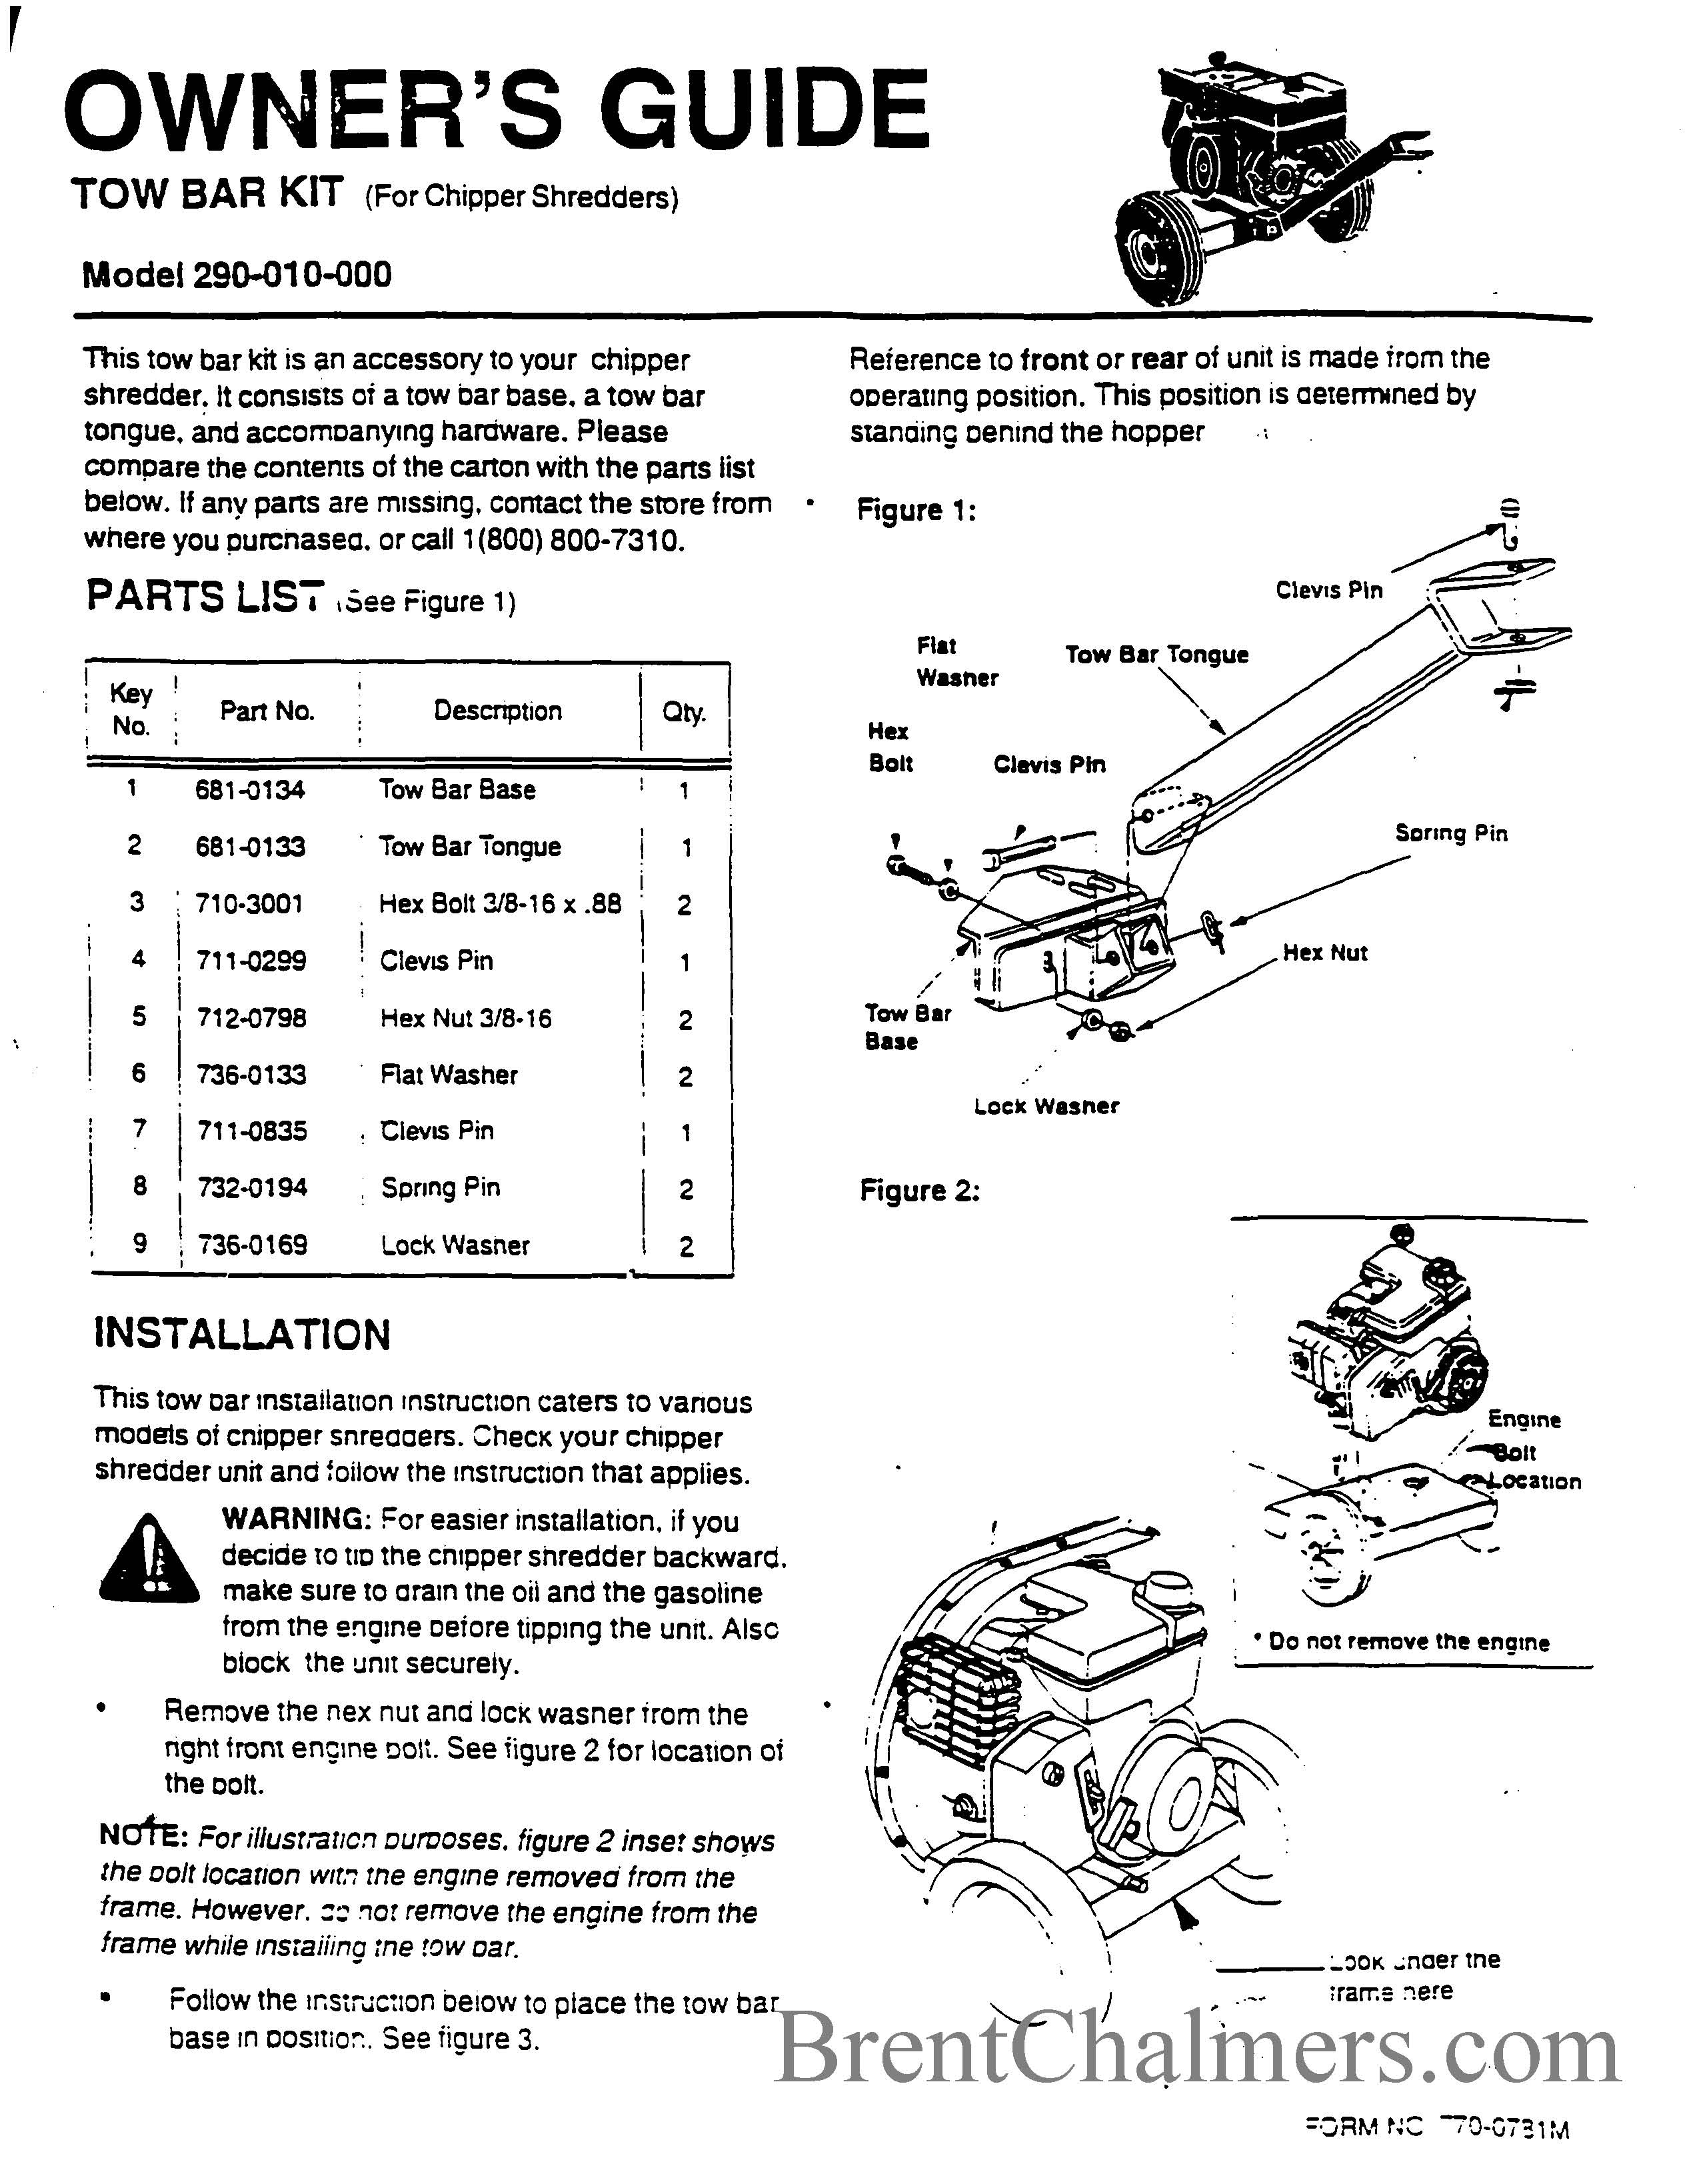 Troy-Bilt Model 290-010-000 Tow Bar Kit Owner's Guide (2 Pages)